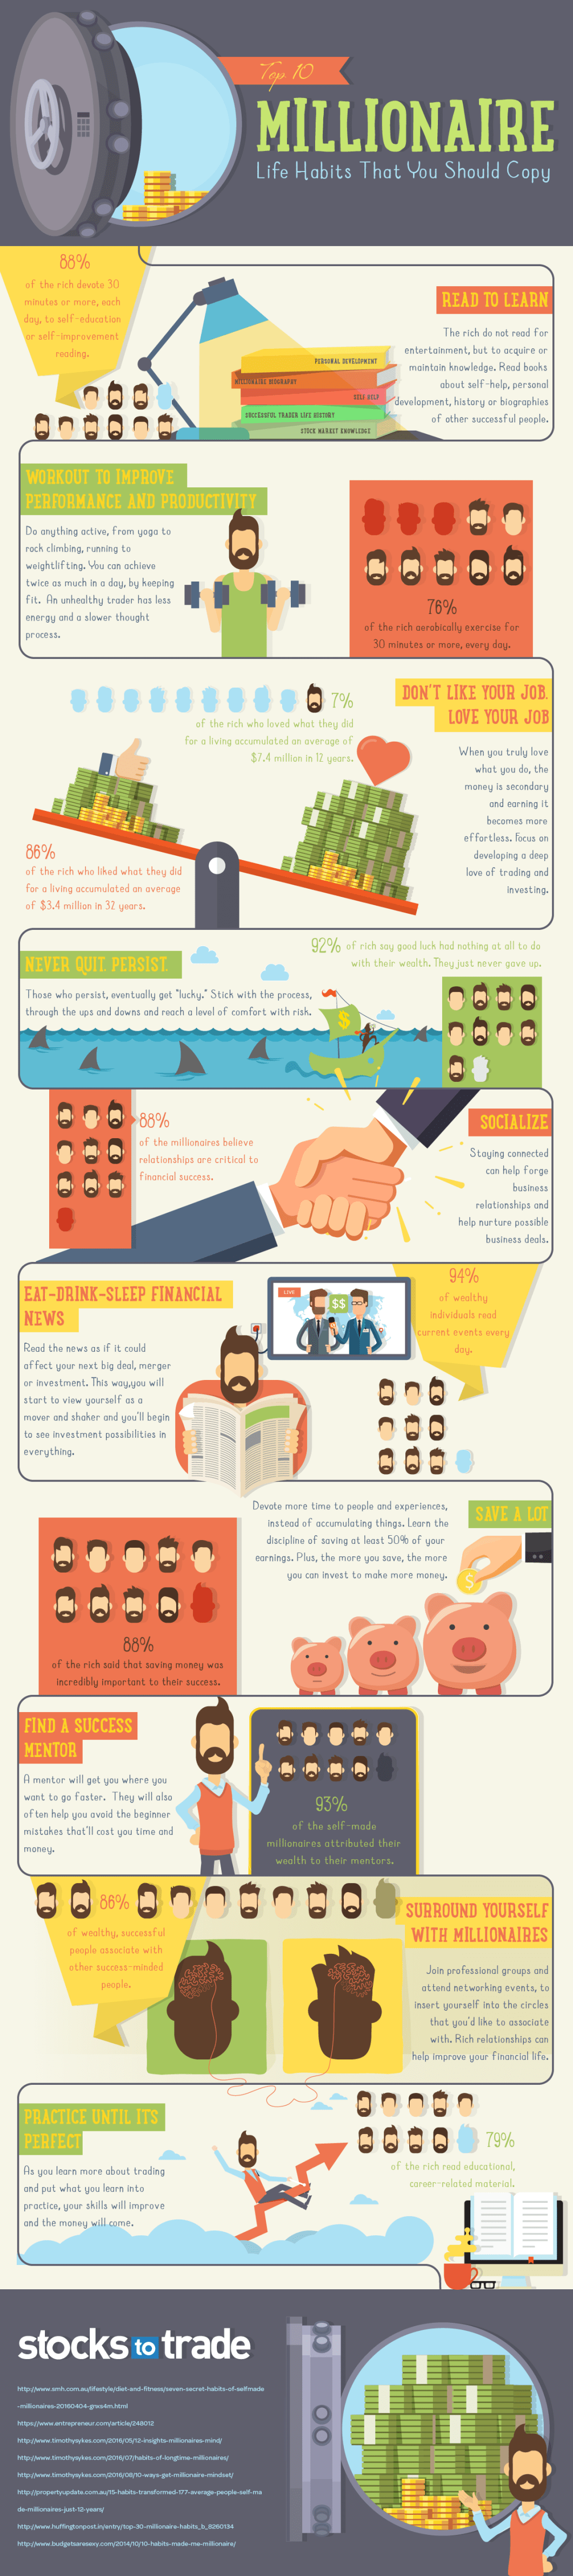 Notable Life Habits Of All Millionaires - Infographic